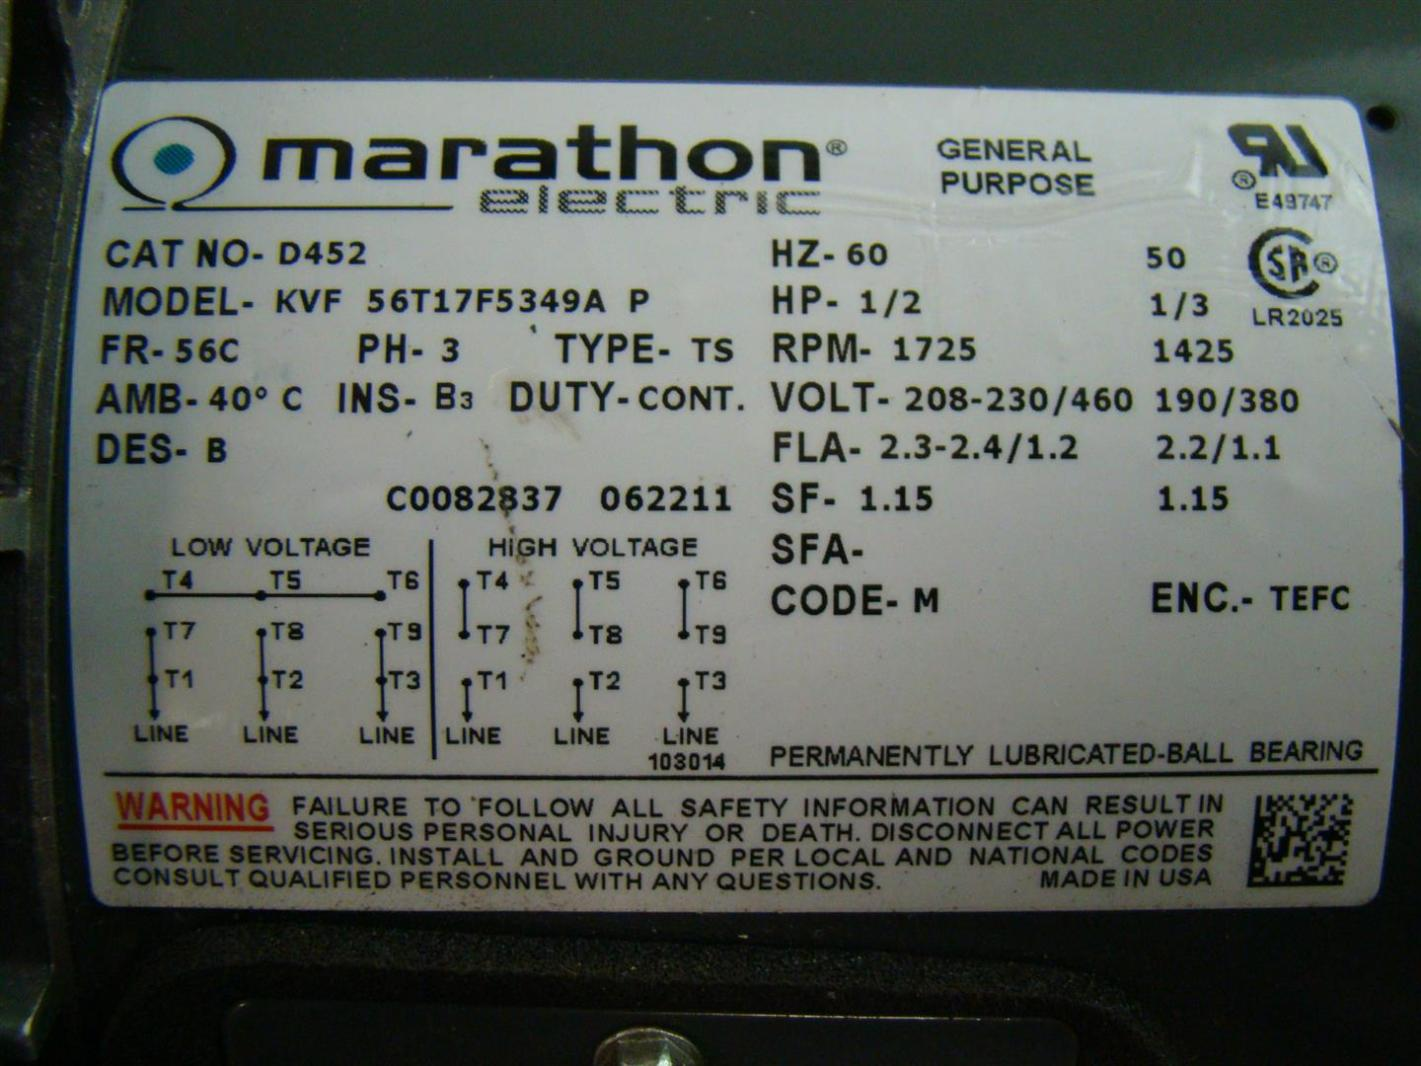 Marathon electric motor motorbrake hp1 2 1725rpm 230 460v for Marathon electric motors model numbers